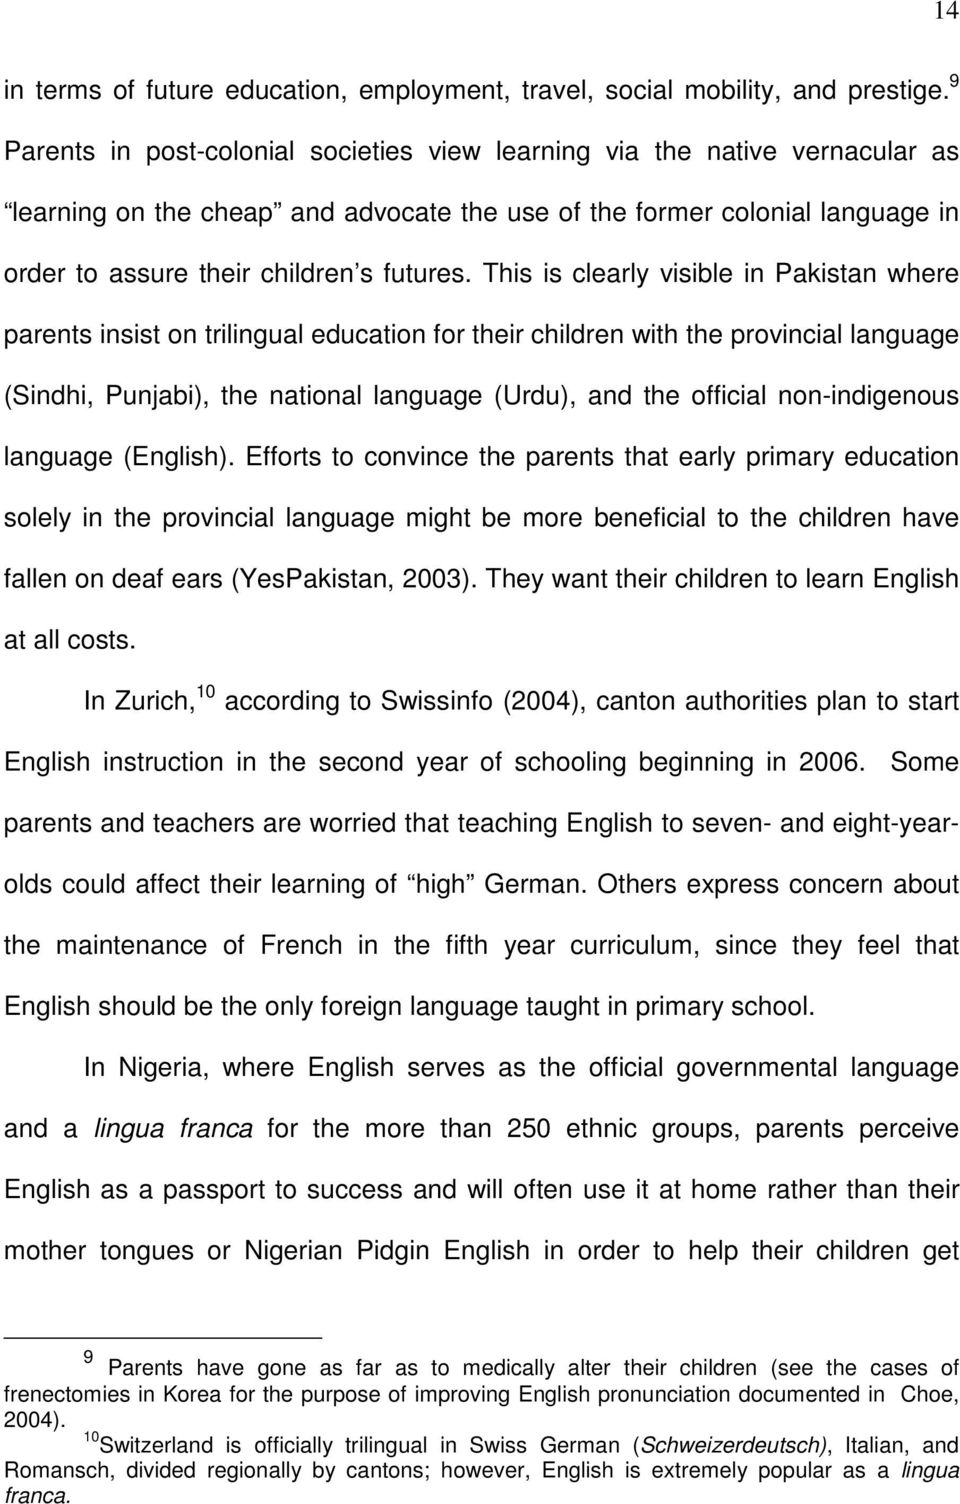 This is clearly visible in Pakistan where parents insist on trilingual education for their children with the provincial language (Sindhi, Punjabi), the national language (Urdu), and the official